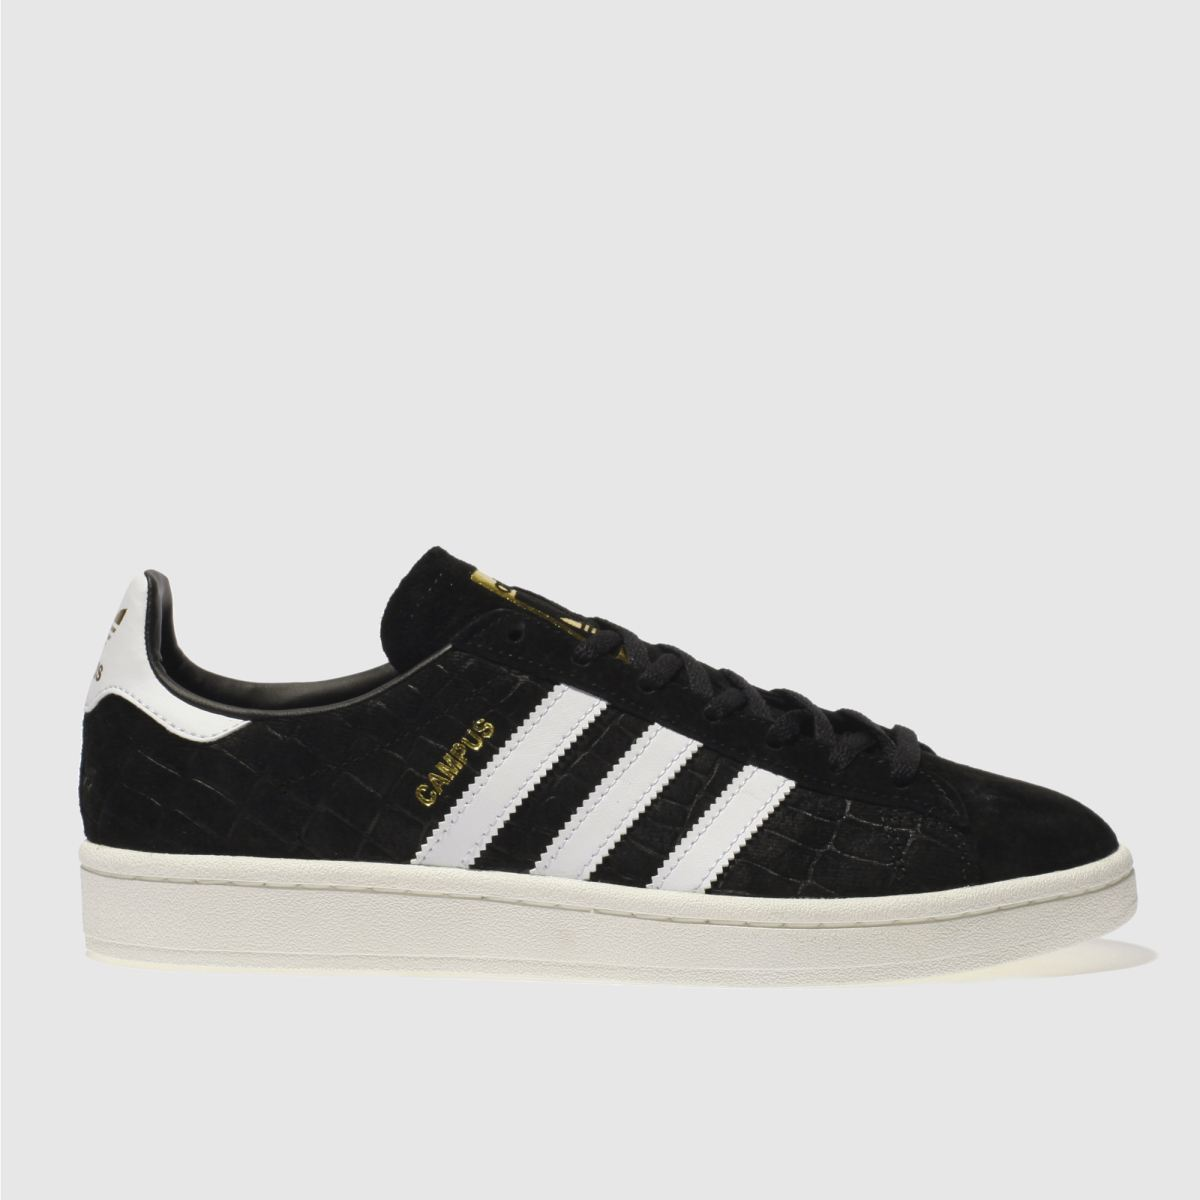 Adidas Black & White Campus Snake Trainers